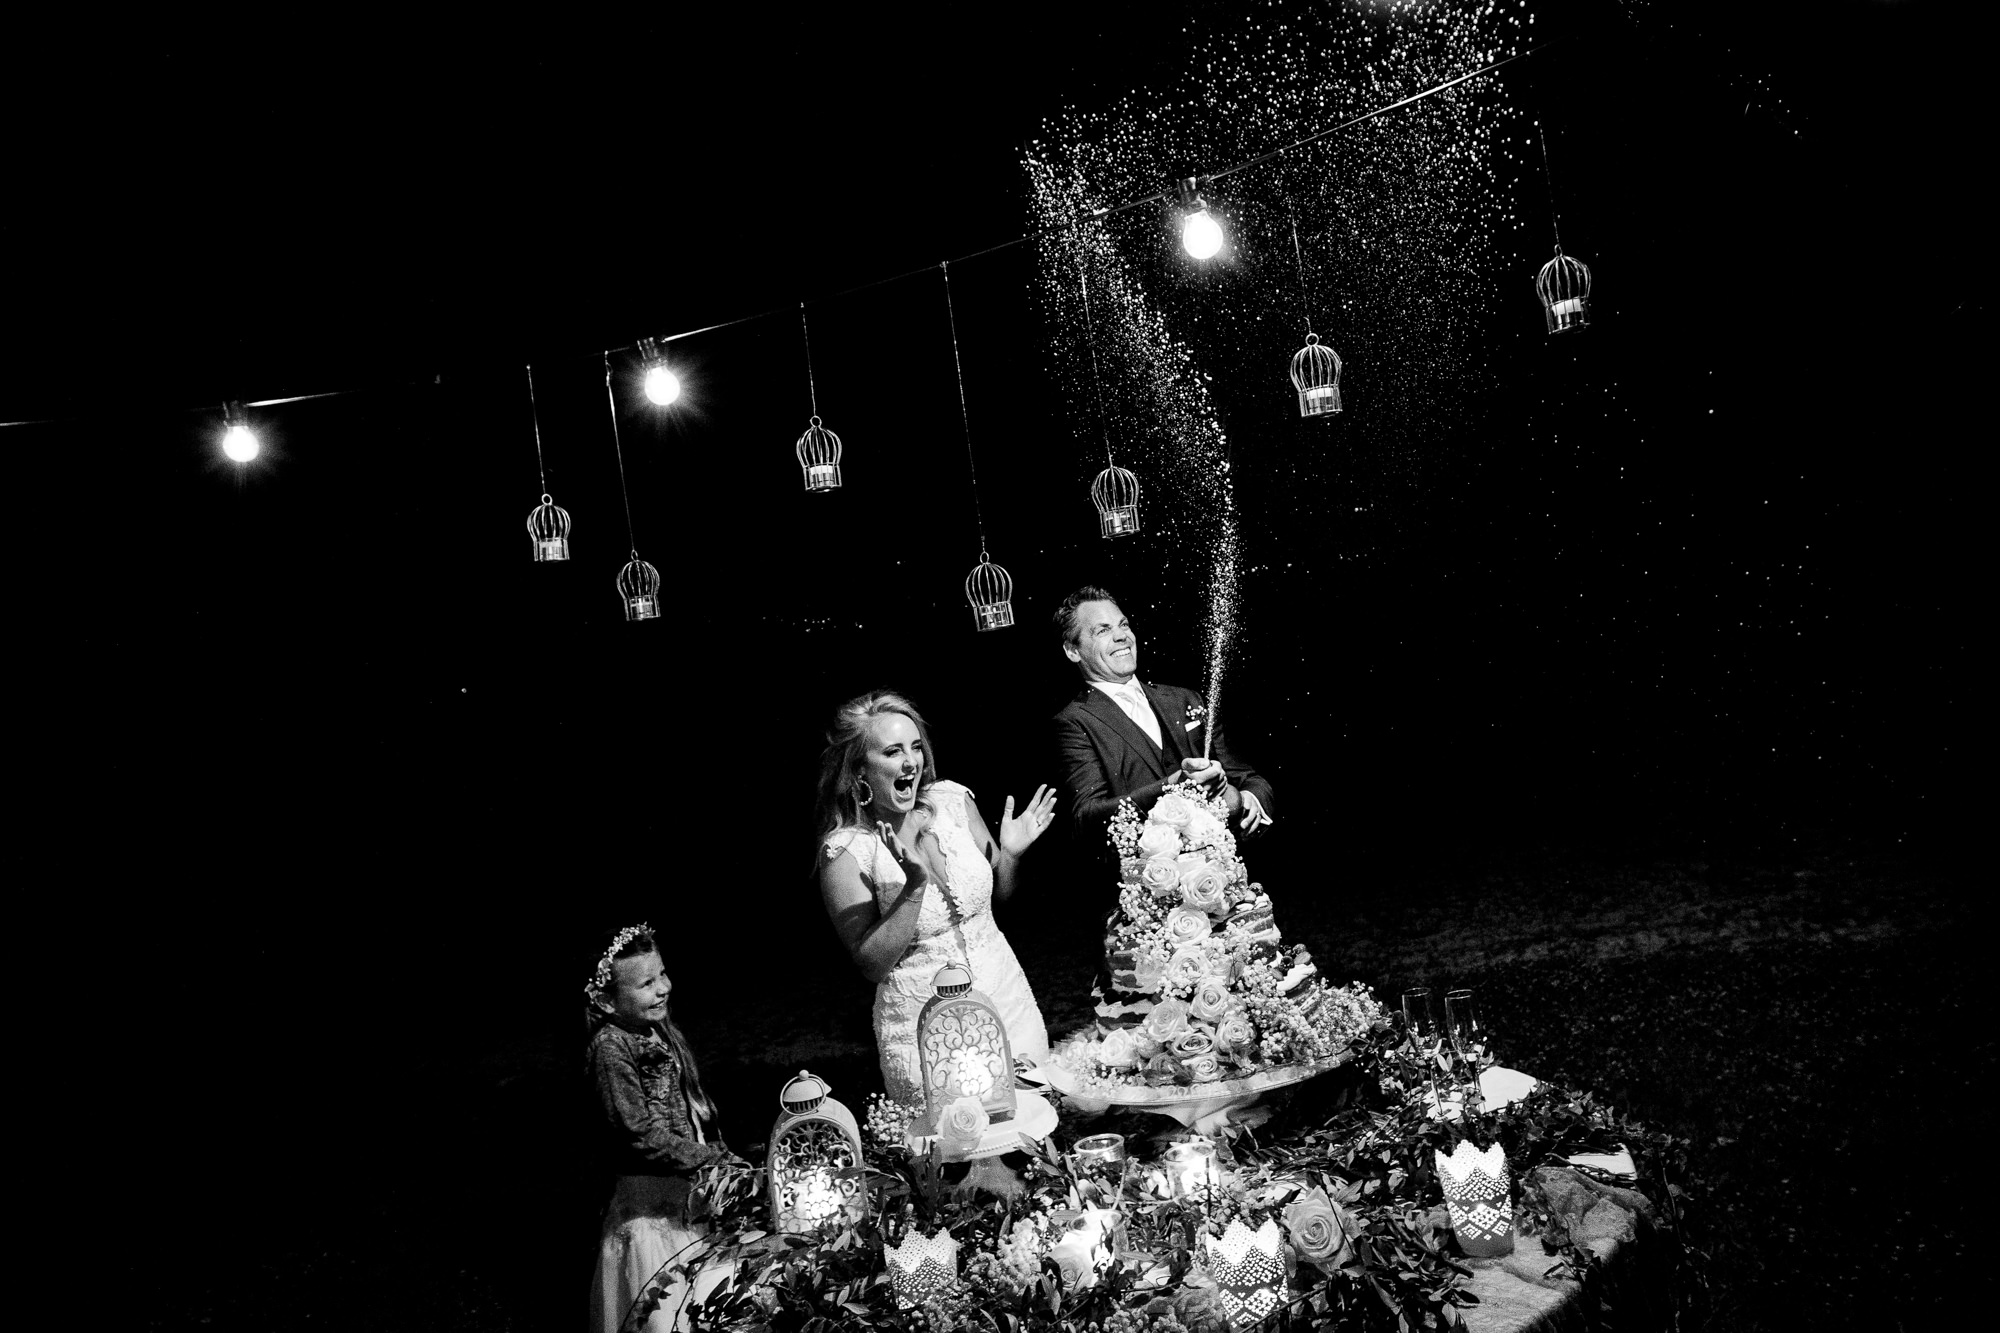 black-and-white-photography-popping-champage-at-reception-worlds-best-wedding-photos-eppel-photography